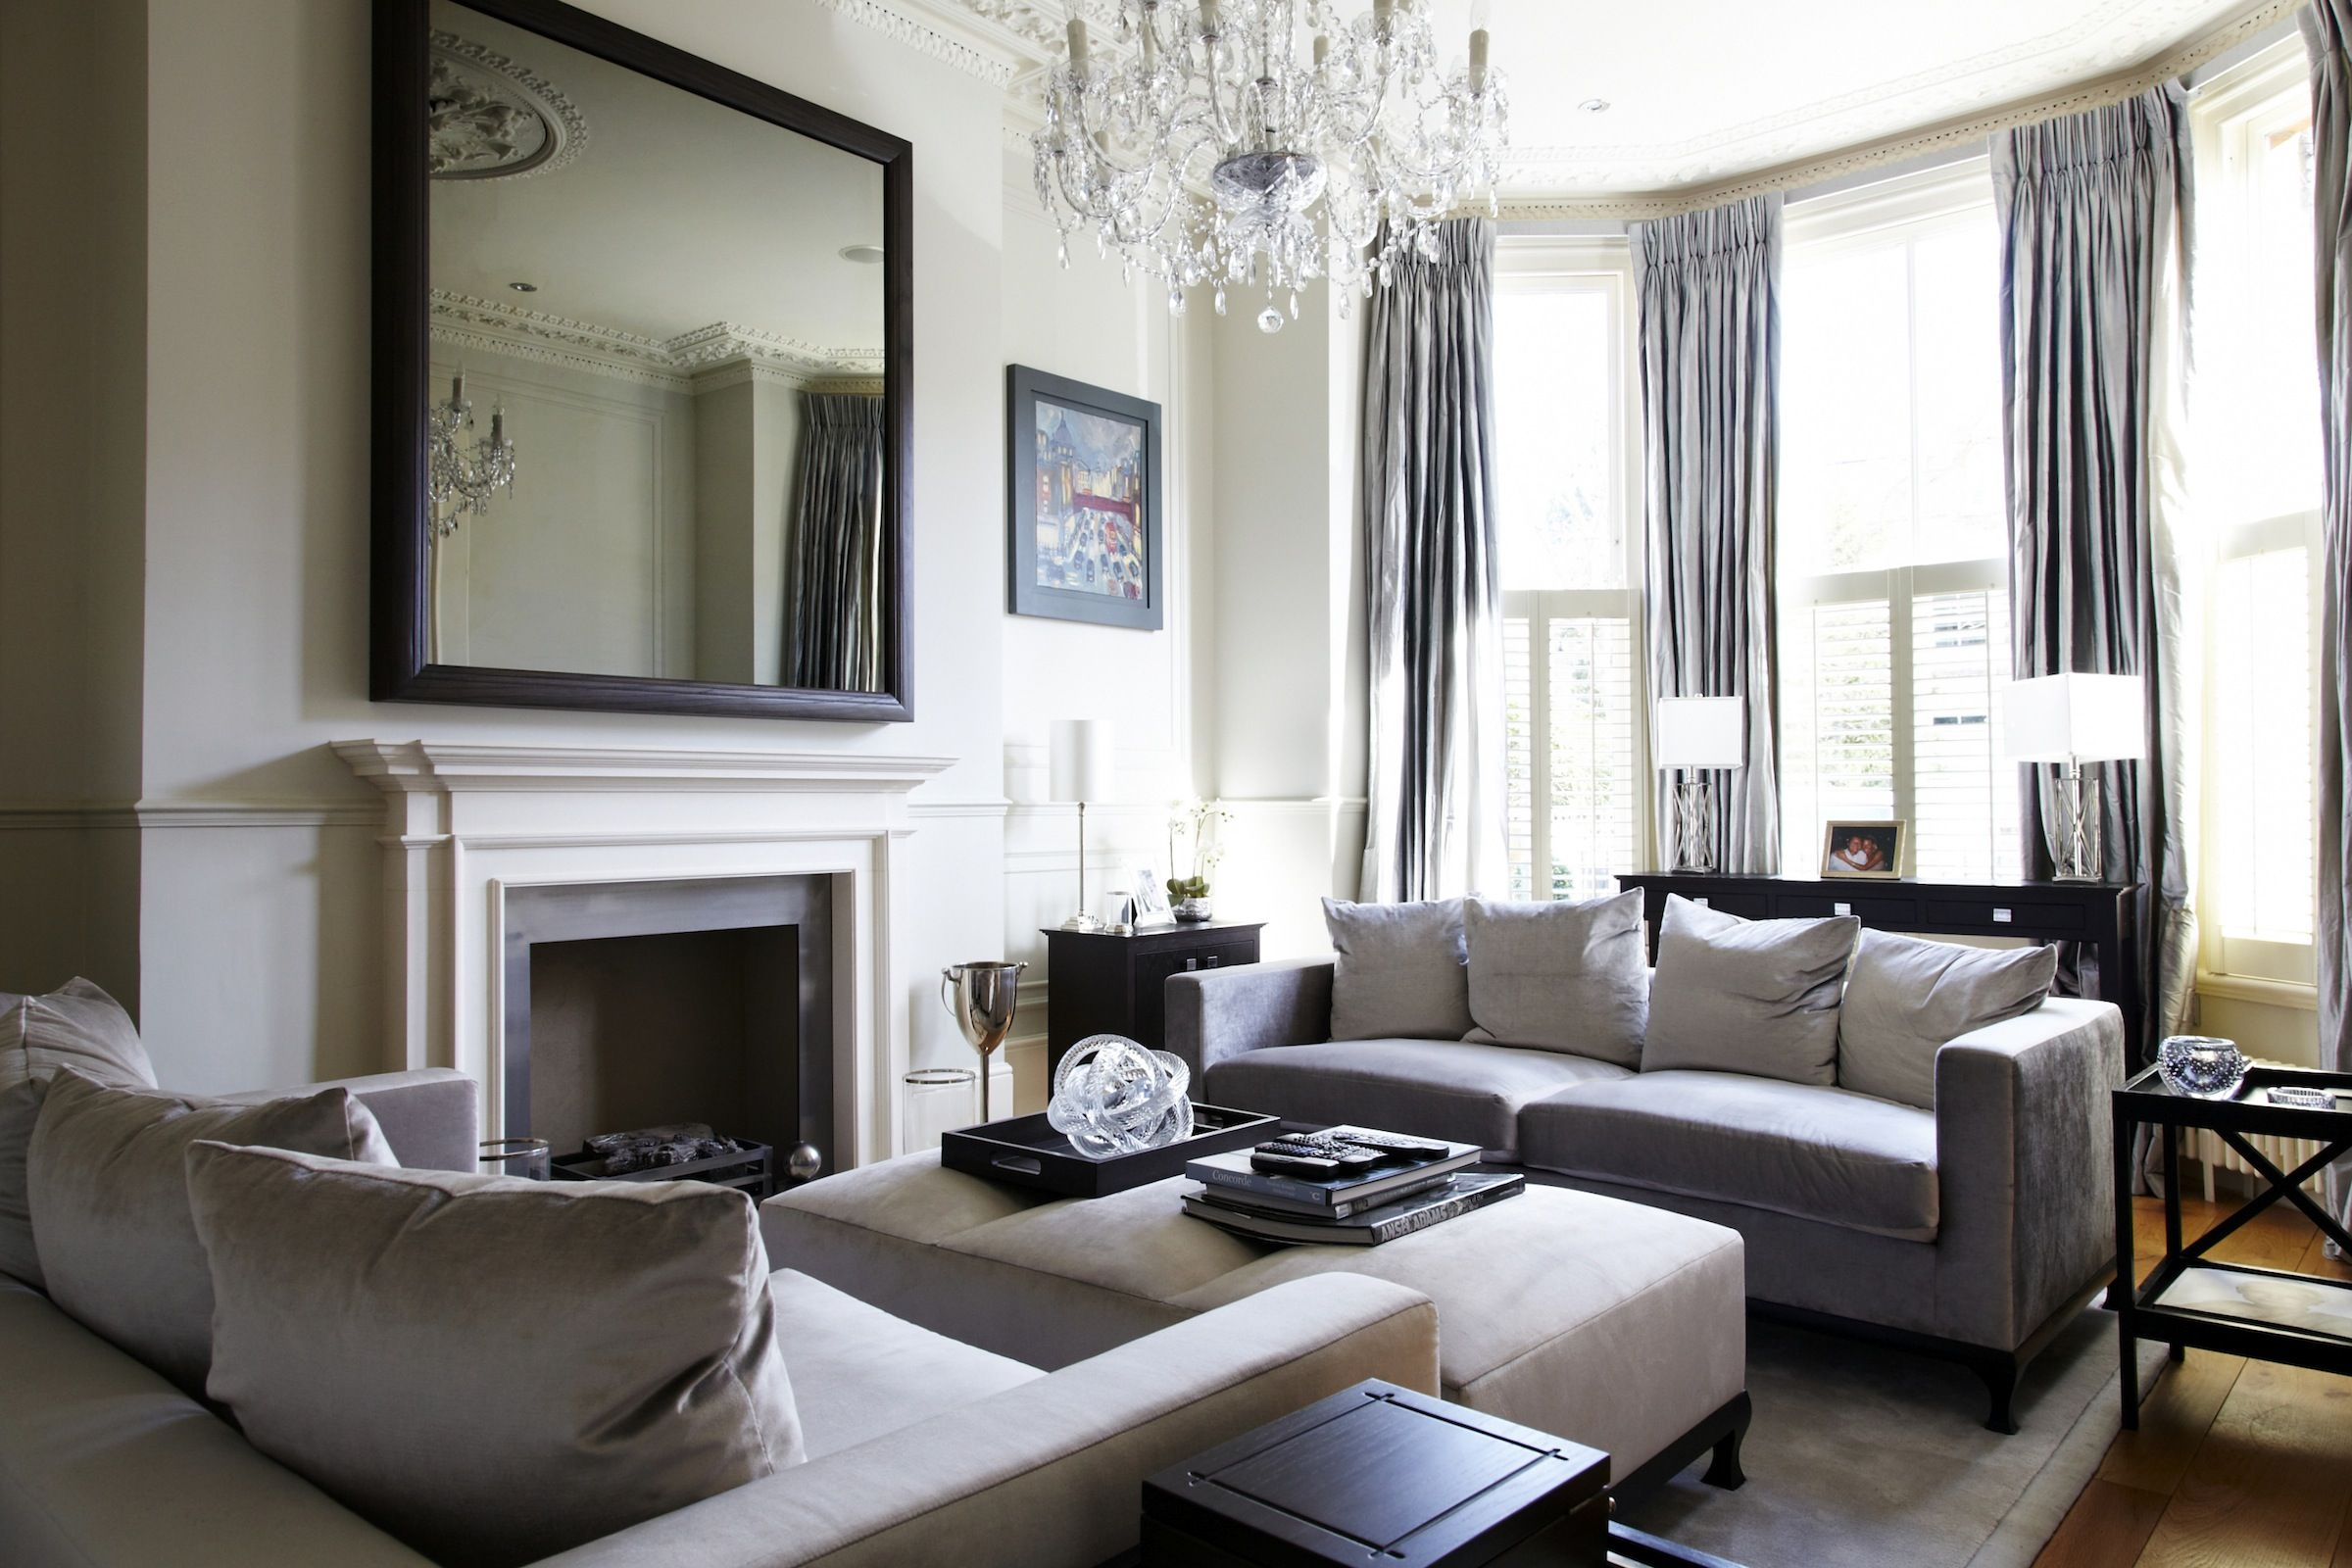 Moderne Sofas Bilder Victorian Chic House With A Modern Twist Hang Your Hat